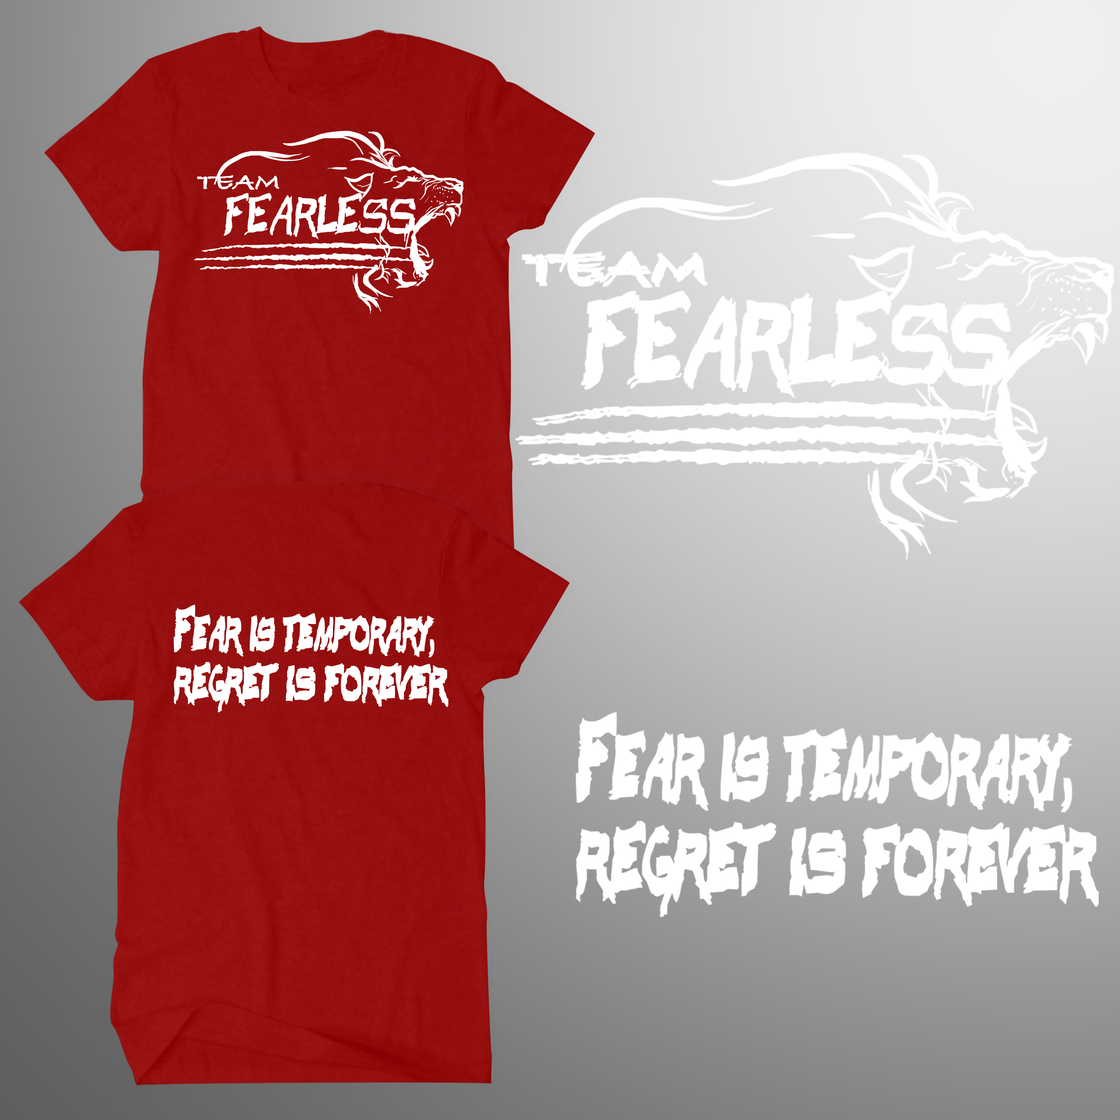 Image of TEAM FEARLESS 2017 T - NAVY, RED, PINK, GREY